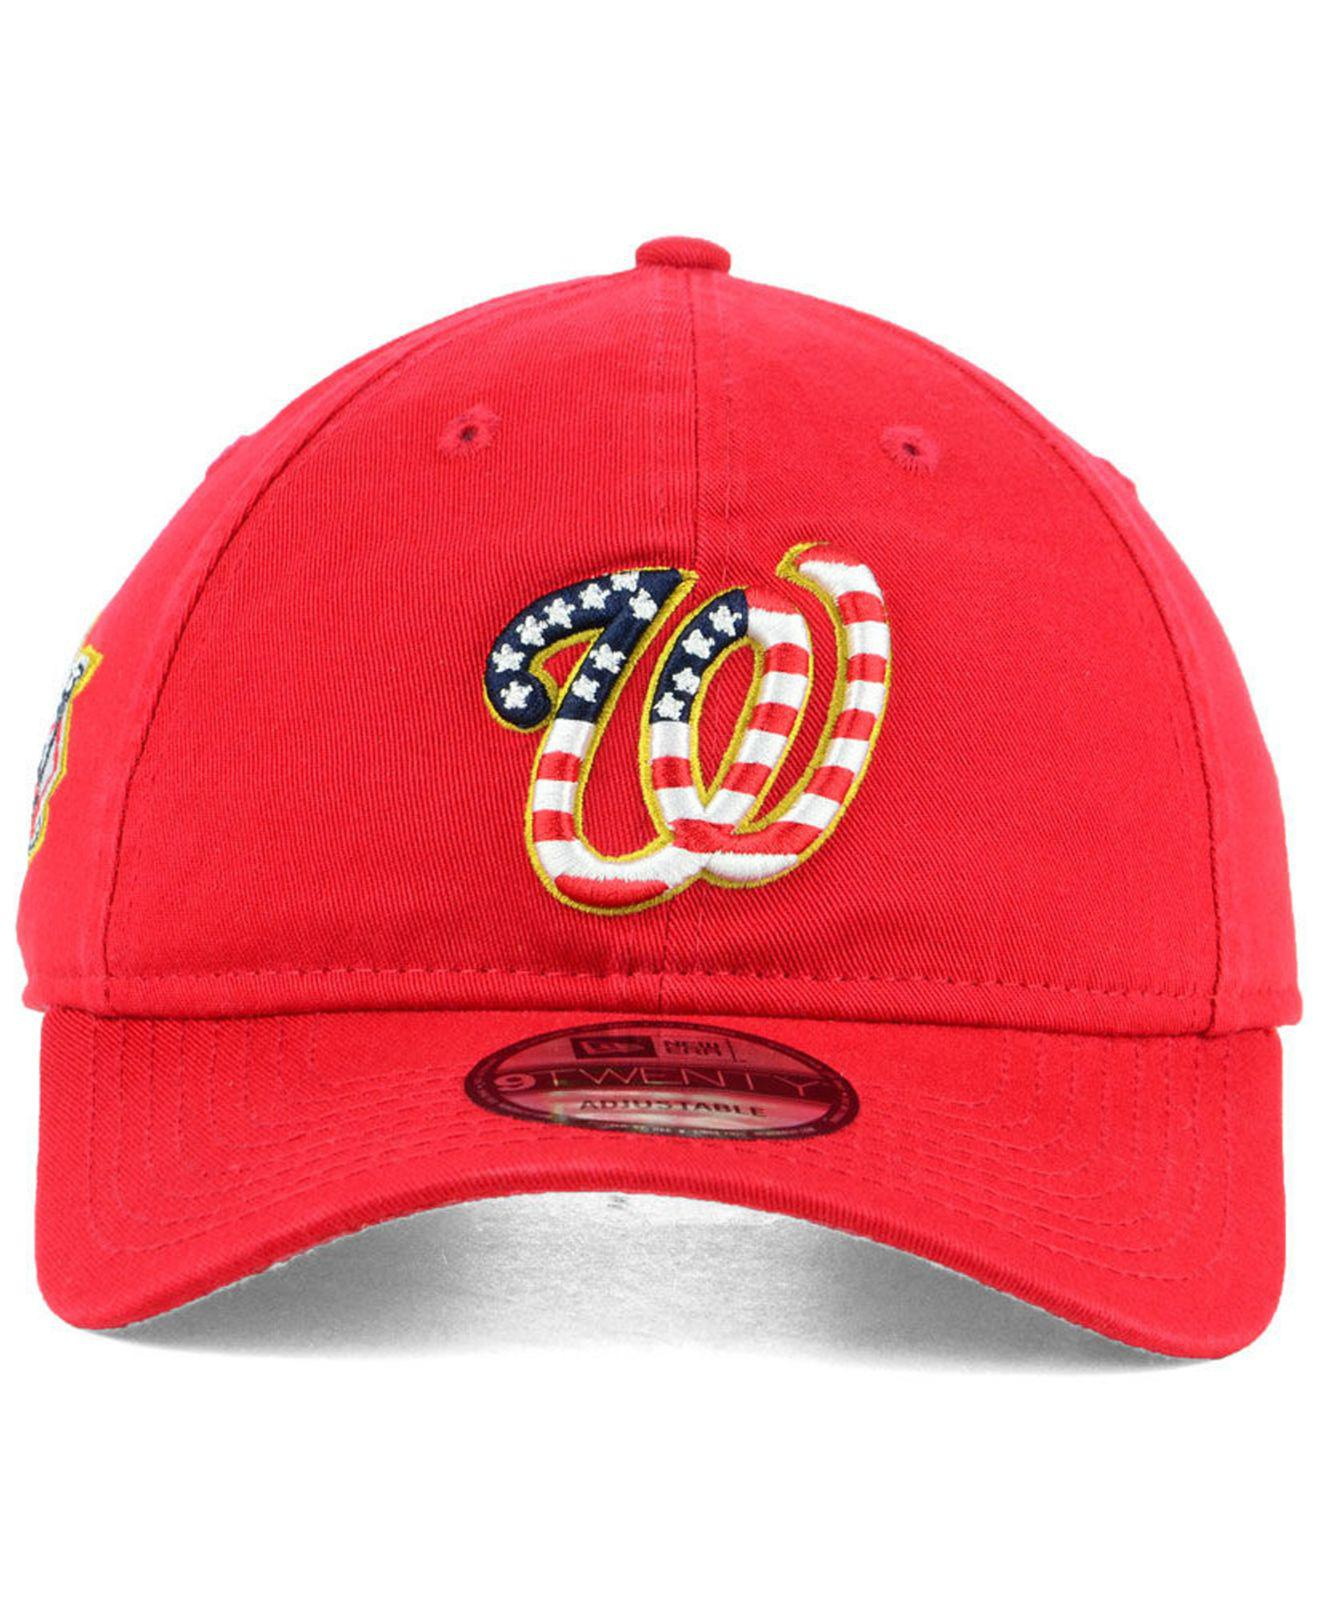 low priced 2a30b 2edb6 Lyst - KTZ Washington Nationals Stars And Stripes 9twenty Strapback Cap in  Red for Men